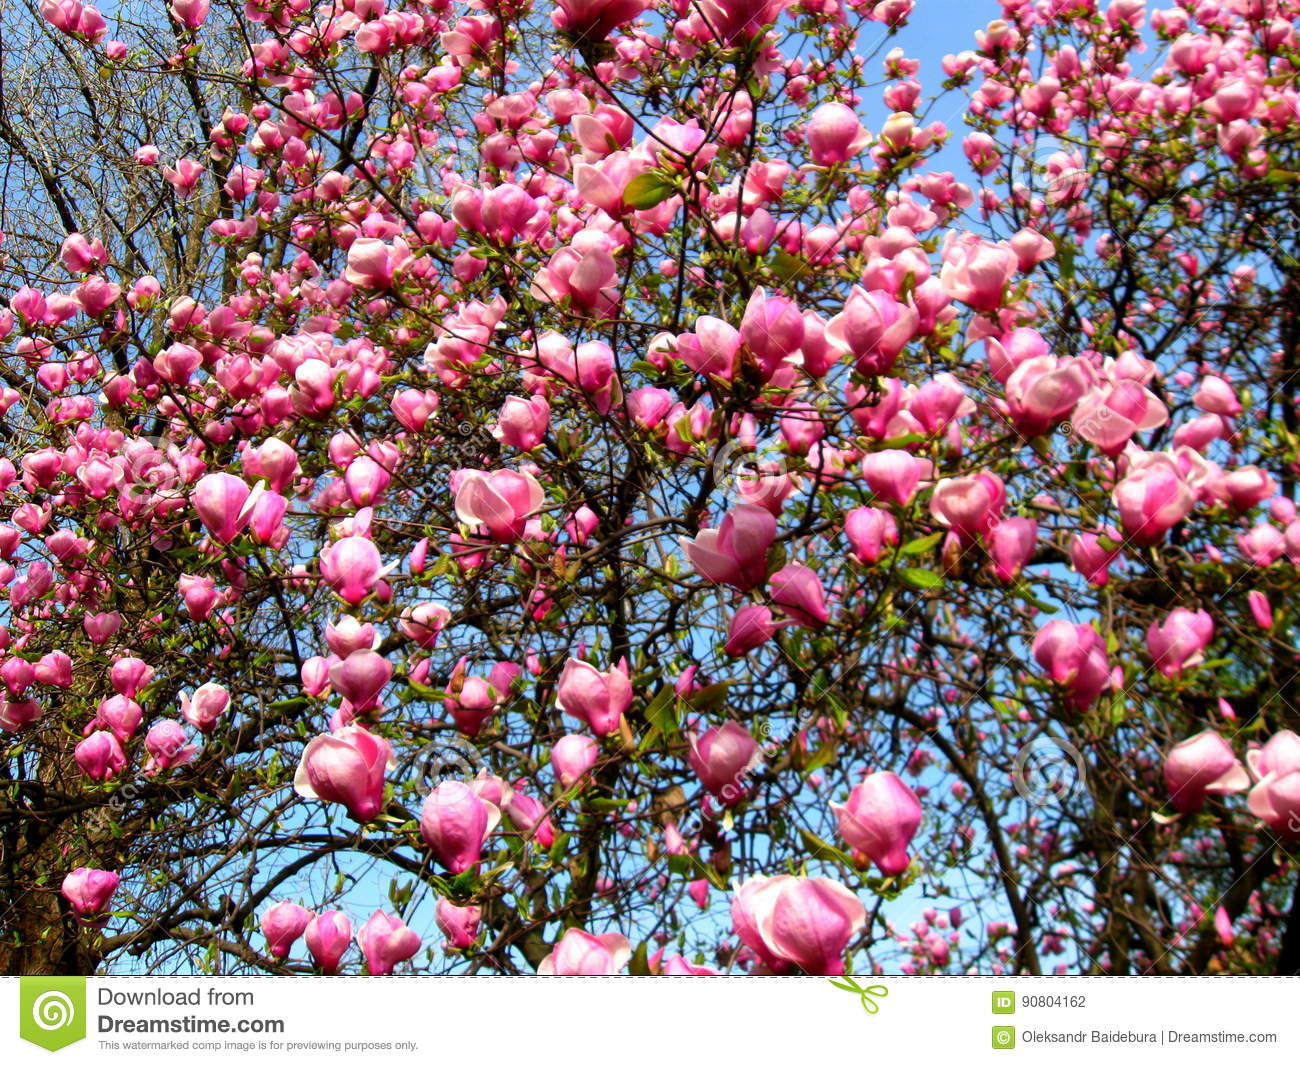 Bloomy magnolia tree with big pink flowers stock photo image of download bloomy magnolia tree with big pink flowers stock photo image of cultivation background mightylinksfo